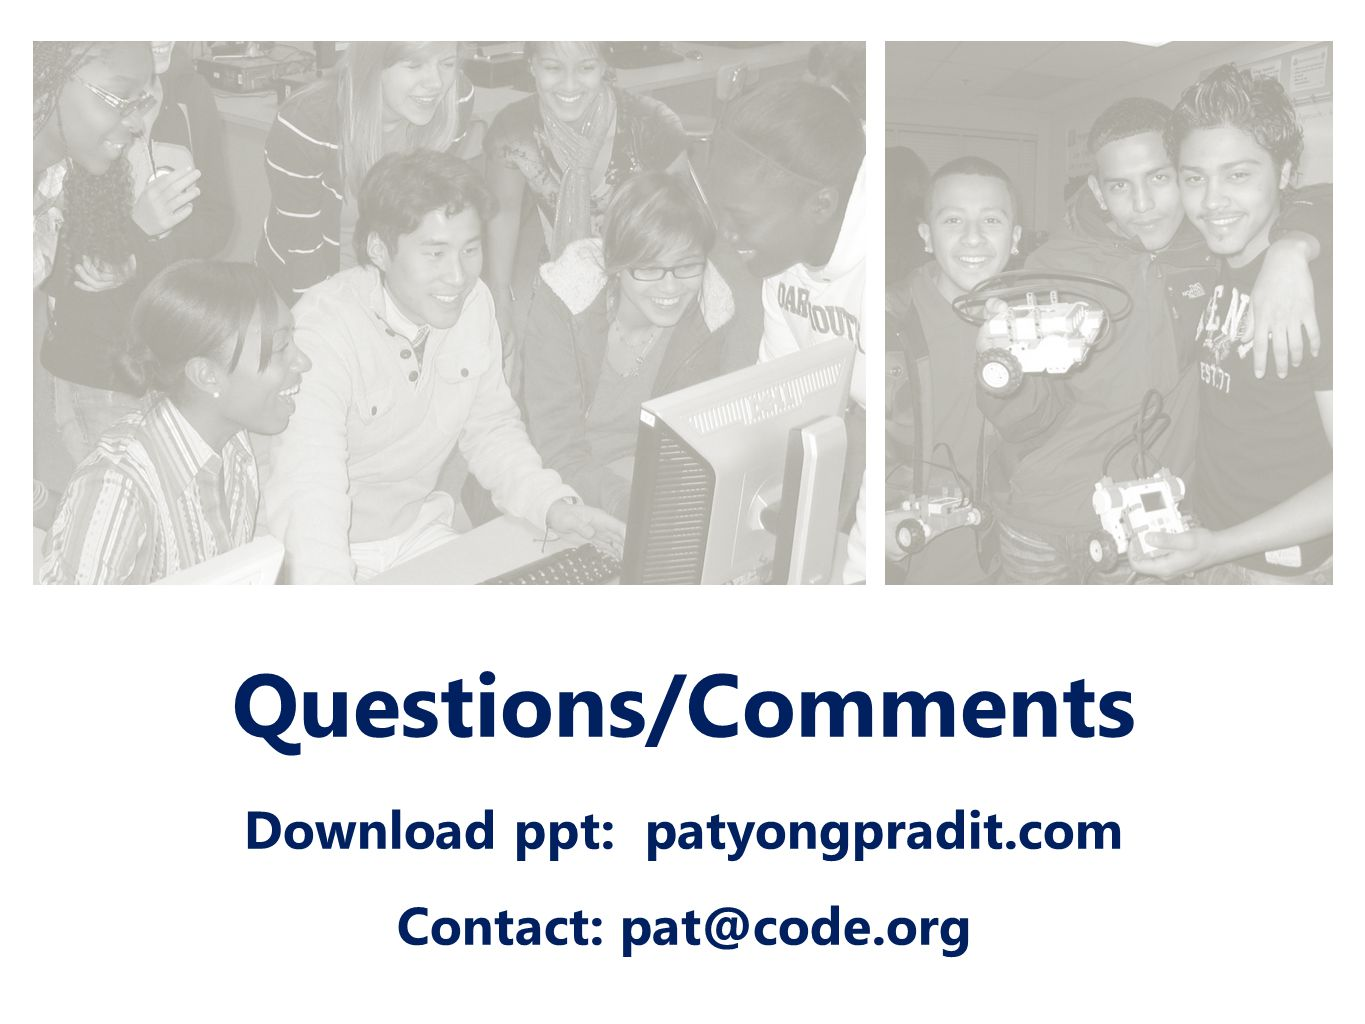 Questions/Comments Download ppt: patyongpradit.com Contact: pat@code.org